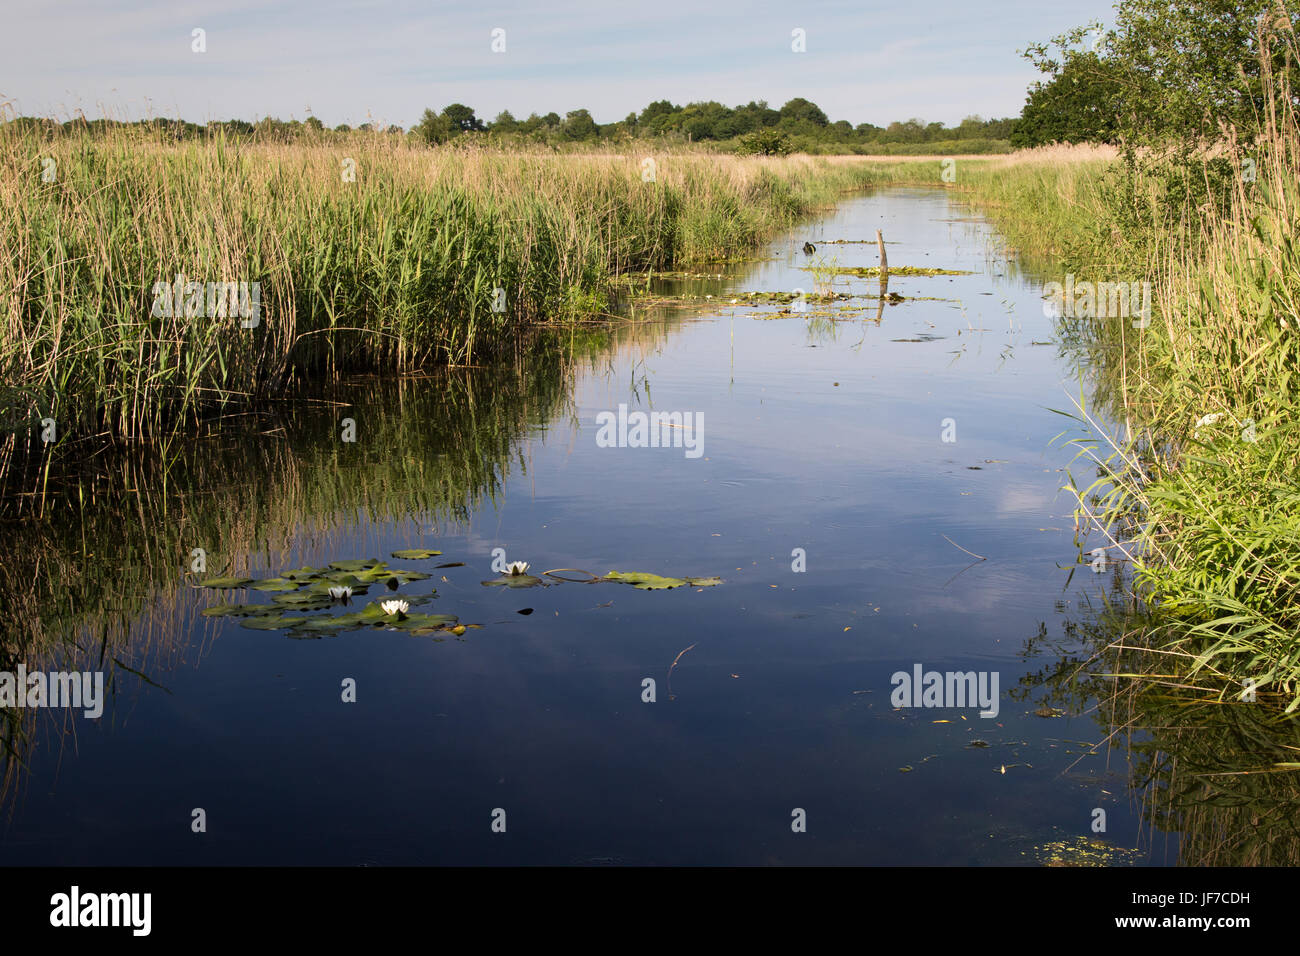 drainage ditch in a reedbed at Strumpshaw Fen, Norfolk - Stock Image